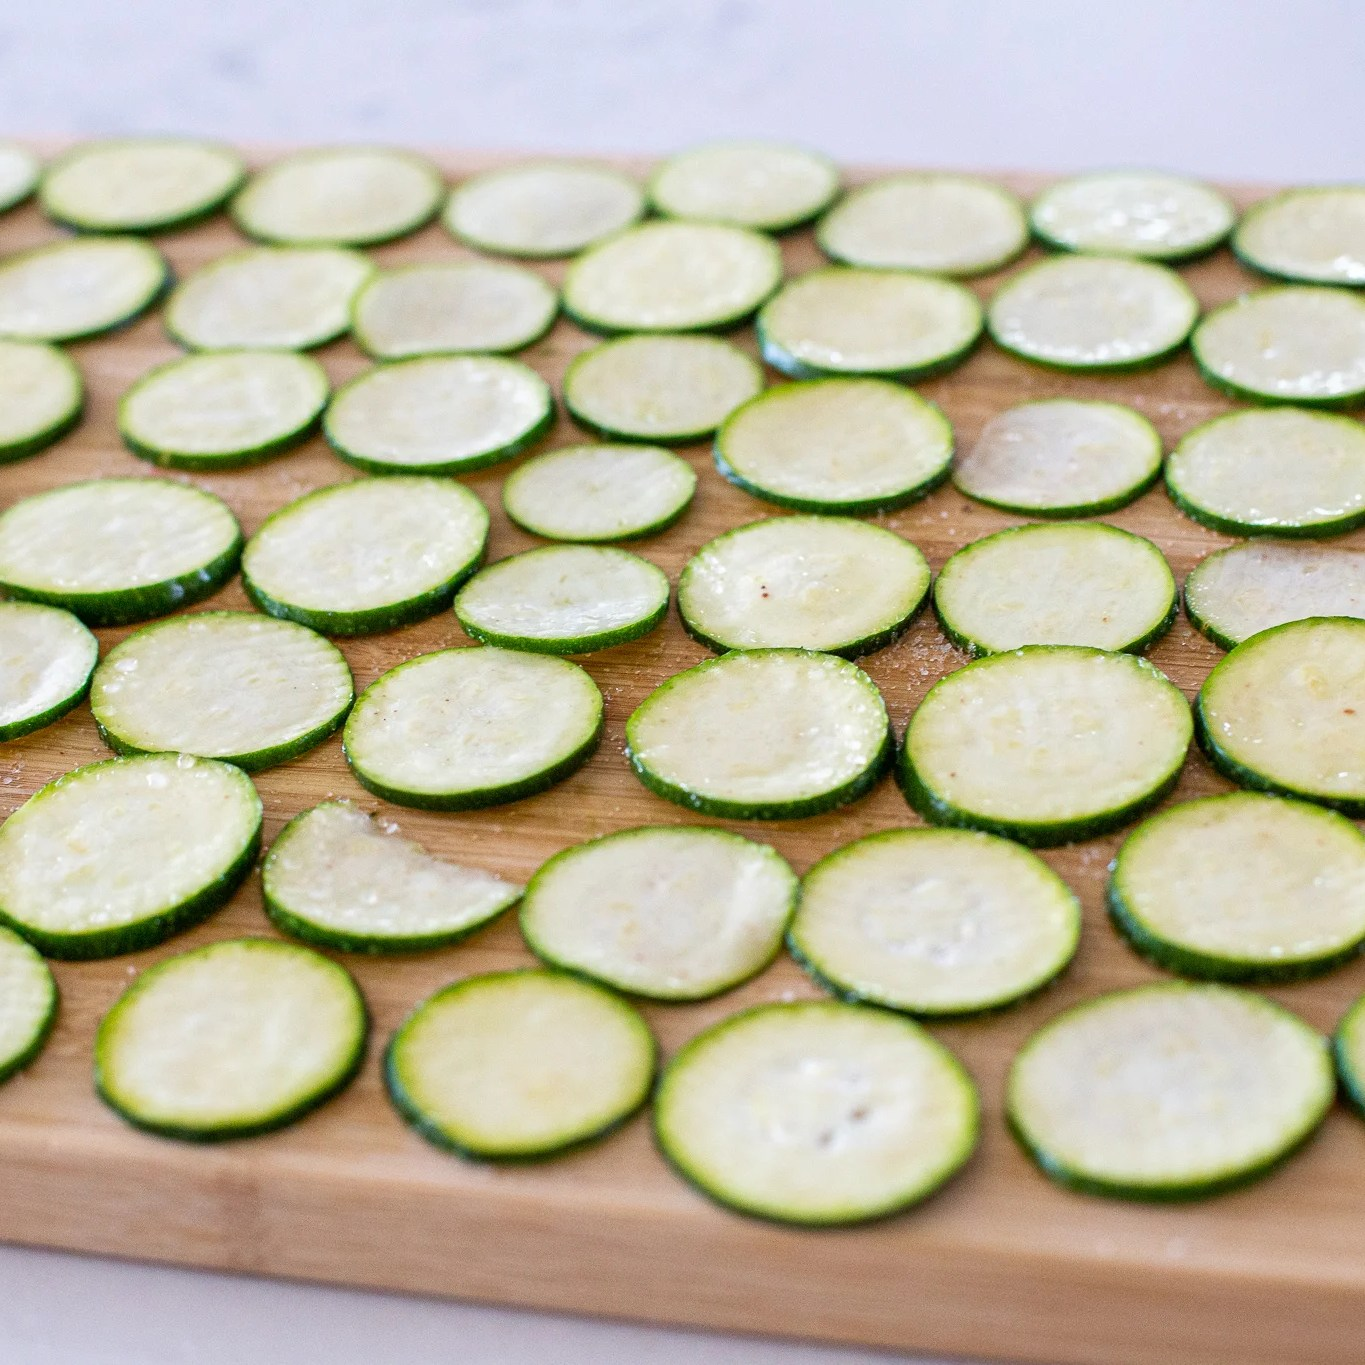 Salted zucchini pieces on a cutting board